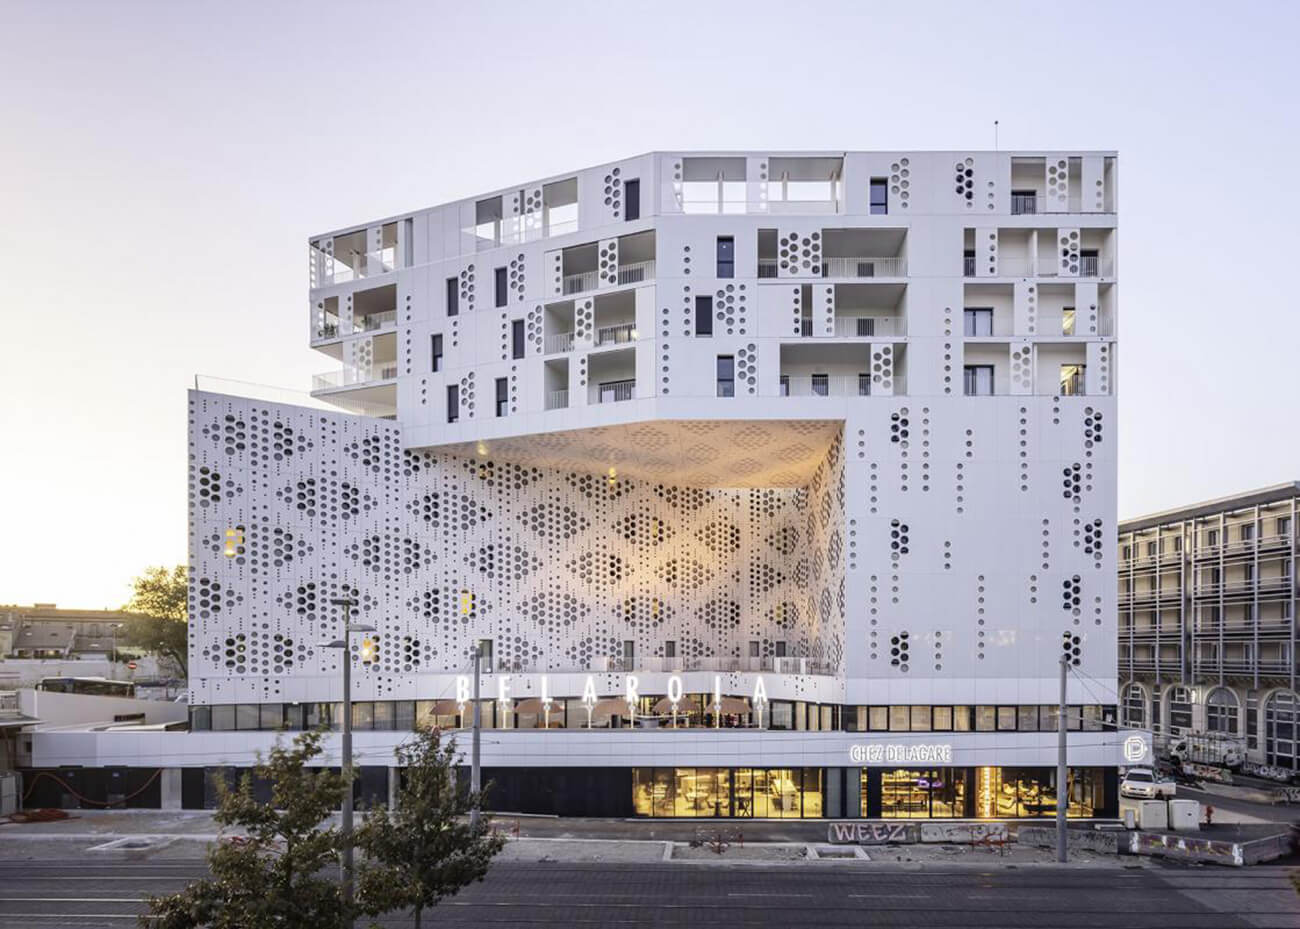 Le Belaroïa by Manuelle Gautrand Architecture | DNA Paris Design Awards 2020| STIRworld